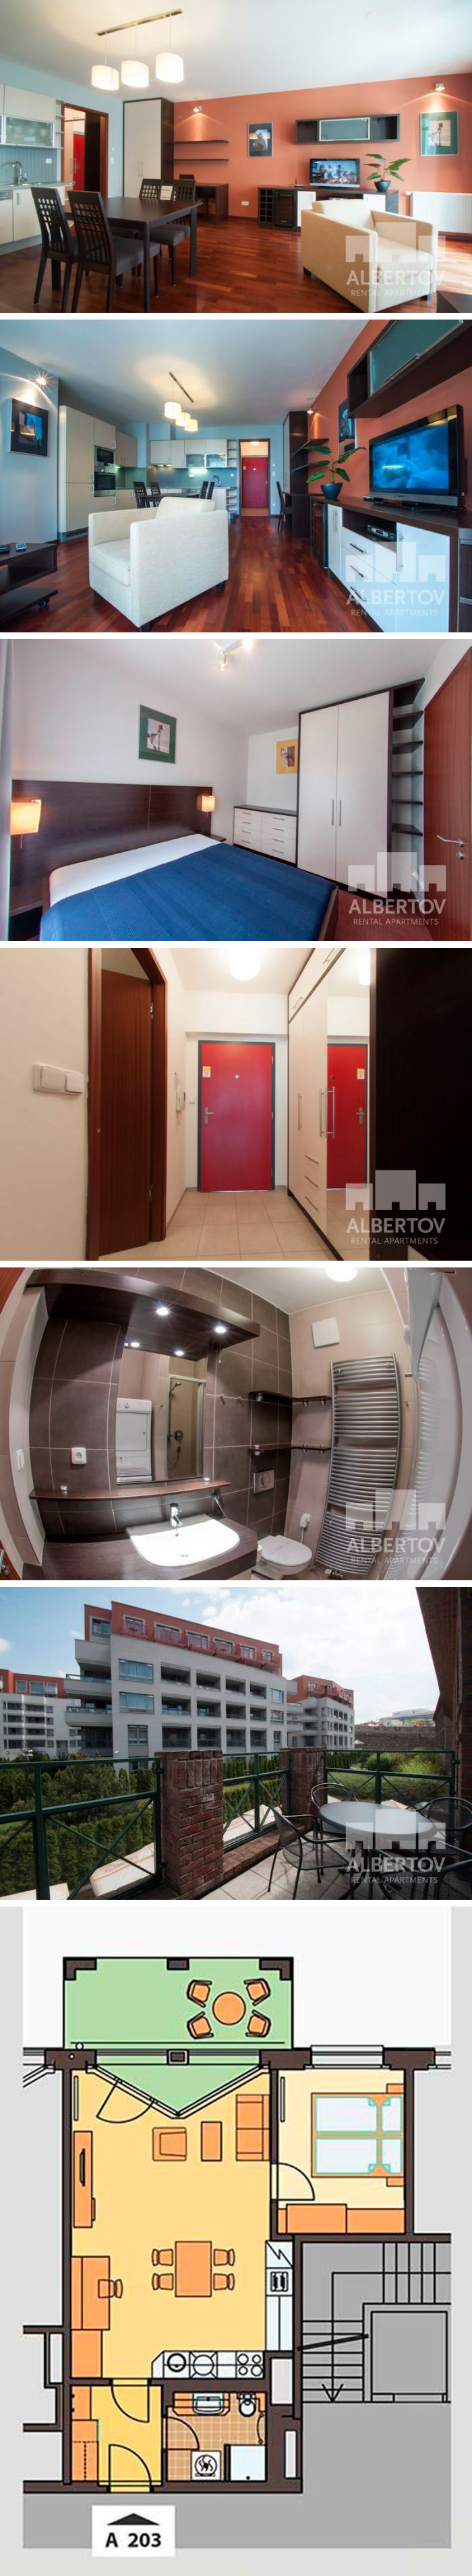 A.203 apartment for rent in Prague: dispozition: 2+kk, floor: 2, balcony, total: 59,2 m2. Albertov Rental Apartments, Horská 2107/2d, Praha 2. Reception: +420 602 22 66 33, reception@albertov.eu, www.albertov.eu